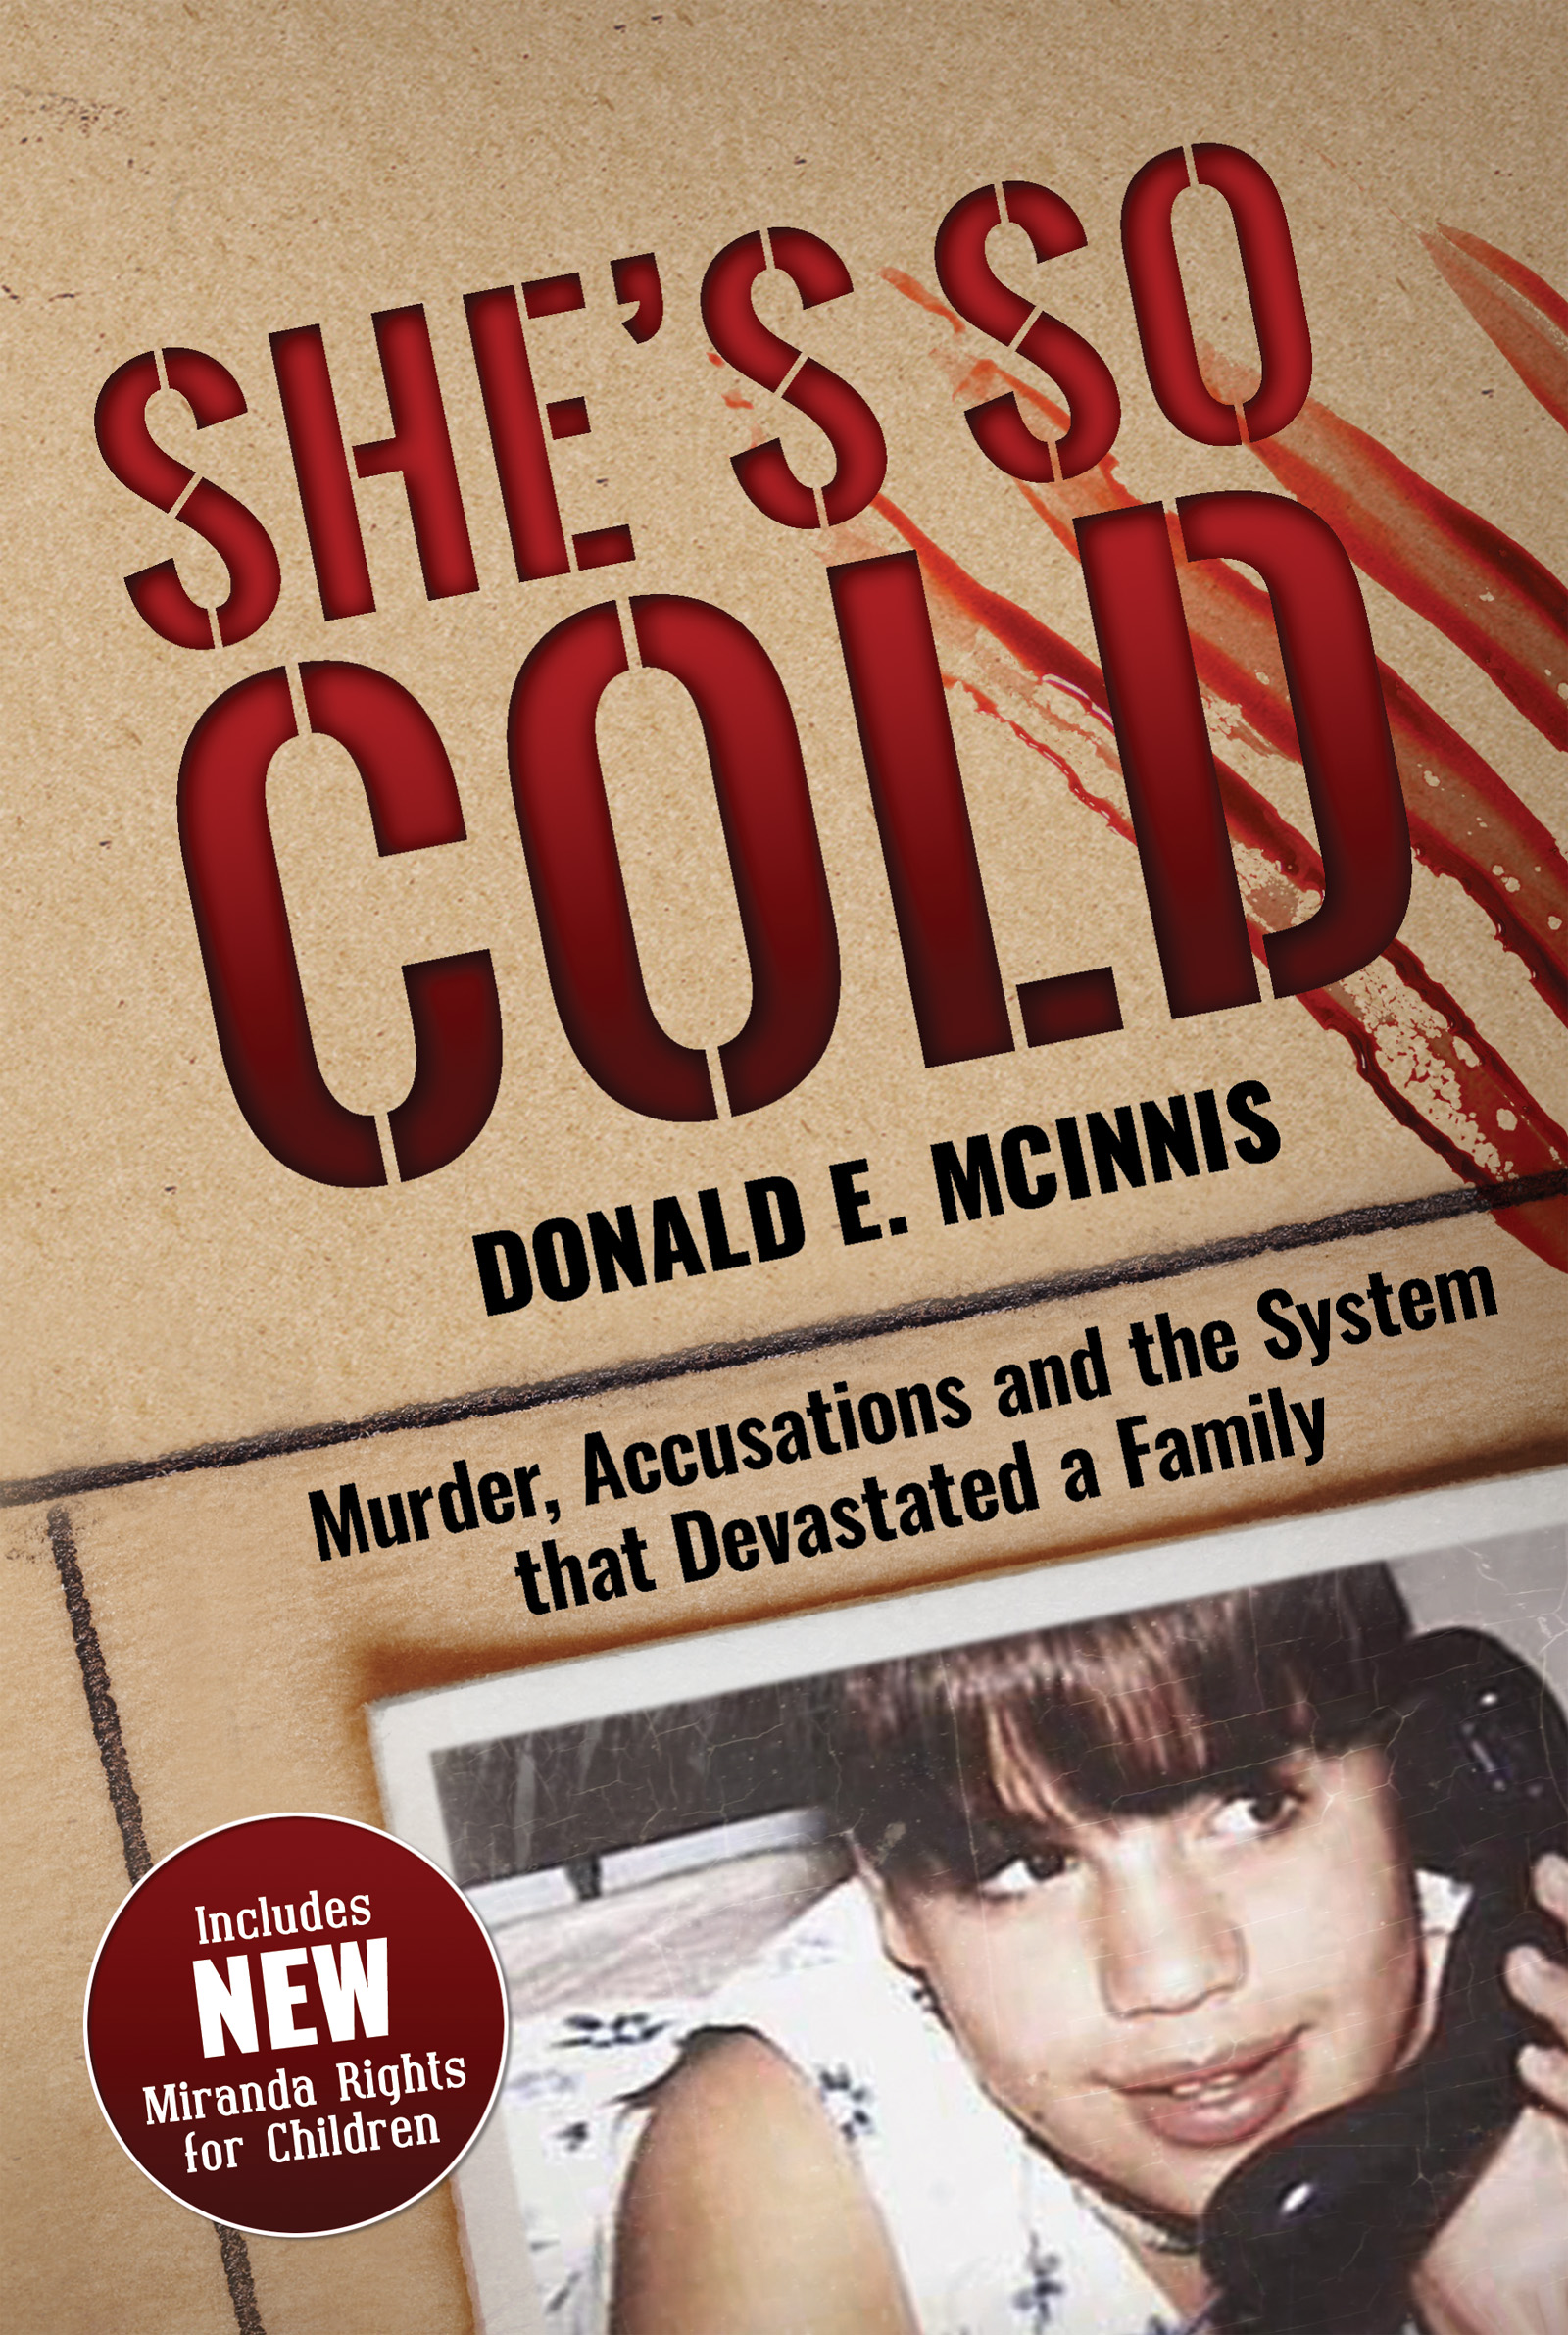 She's So Cold Cover_1600w.jpg